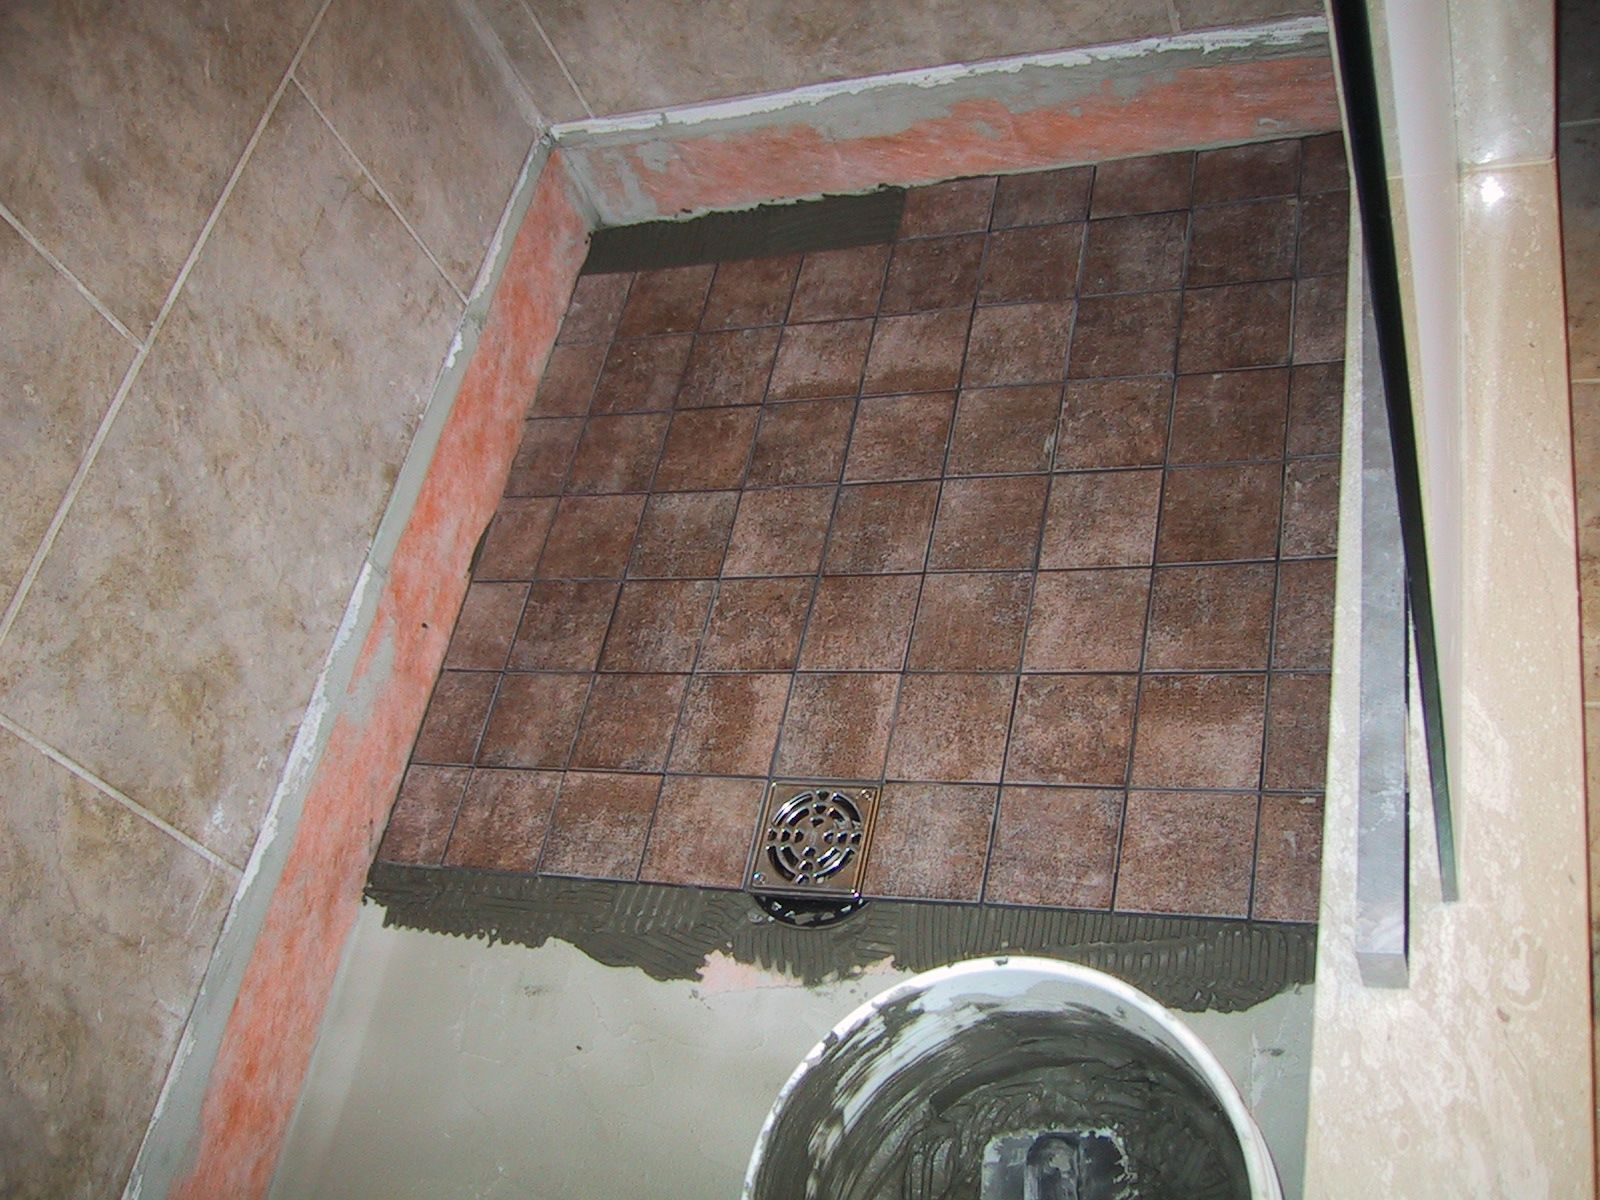 Merveilleux Shower Tile Photos Bath And Shower Tile Designs Another Important Bath And Shower  Tile Design Element Is The Grout Color Choice.